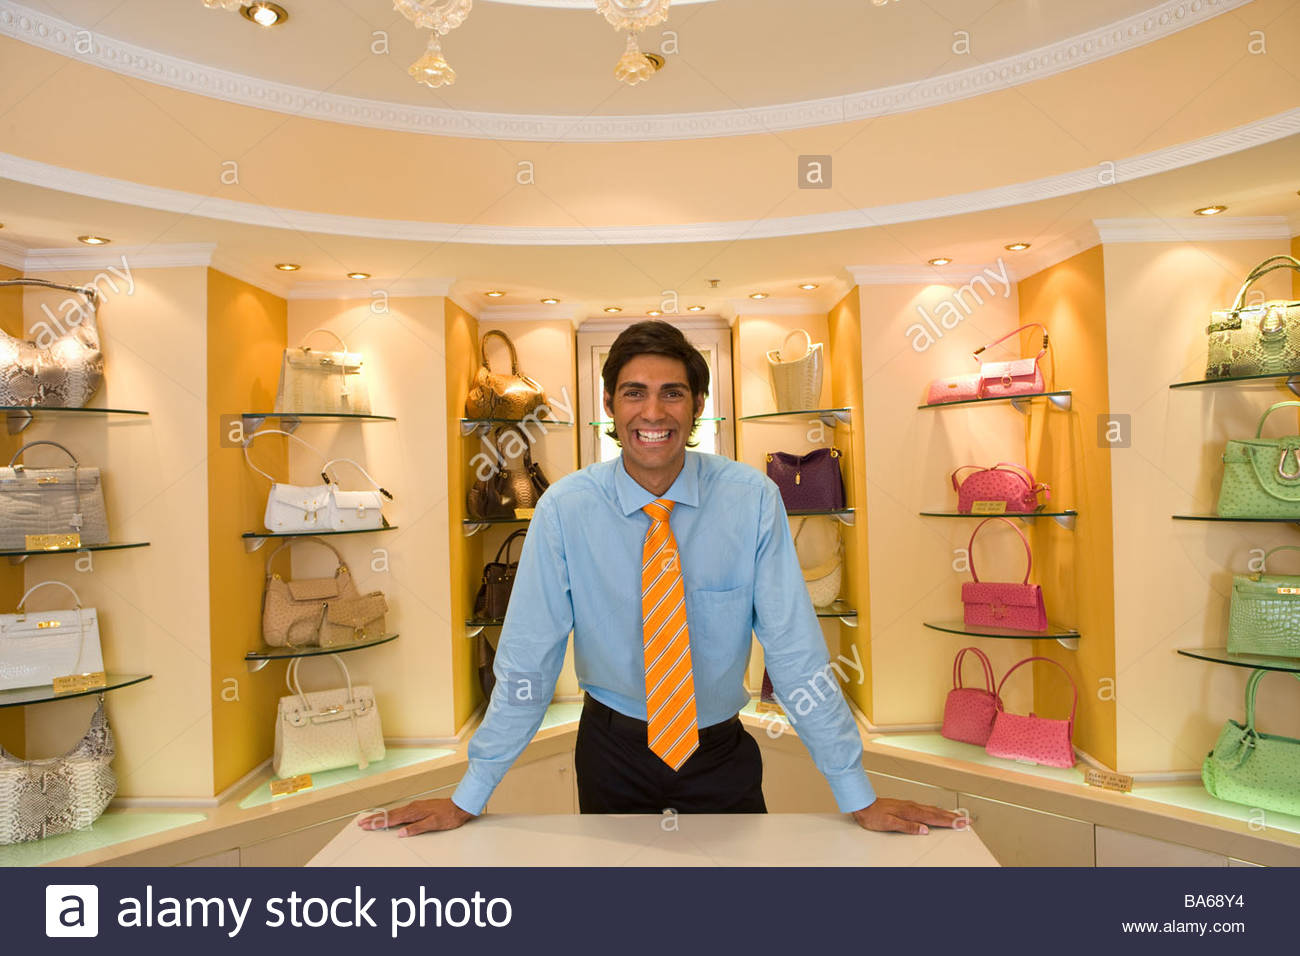 Salesman posing in front of purses - Stock Image